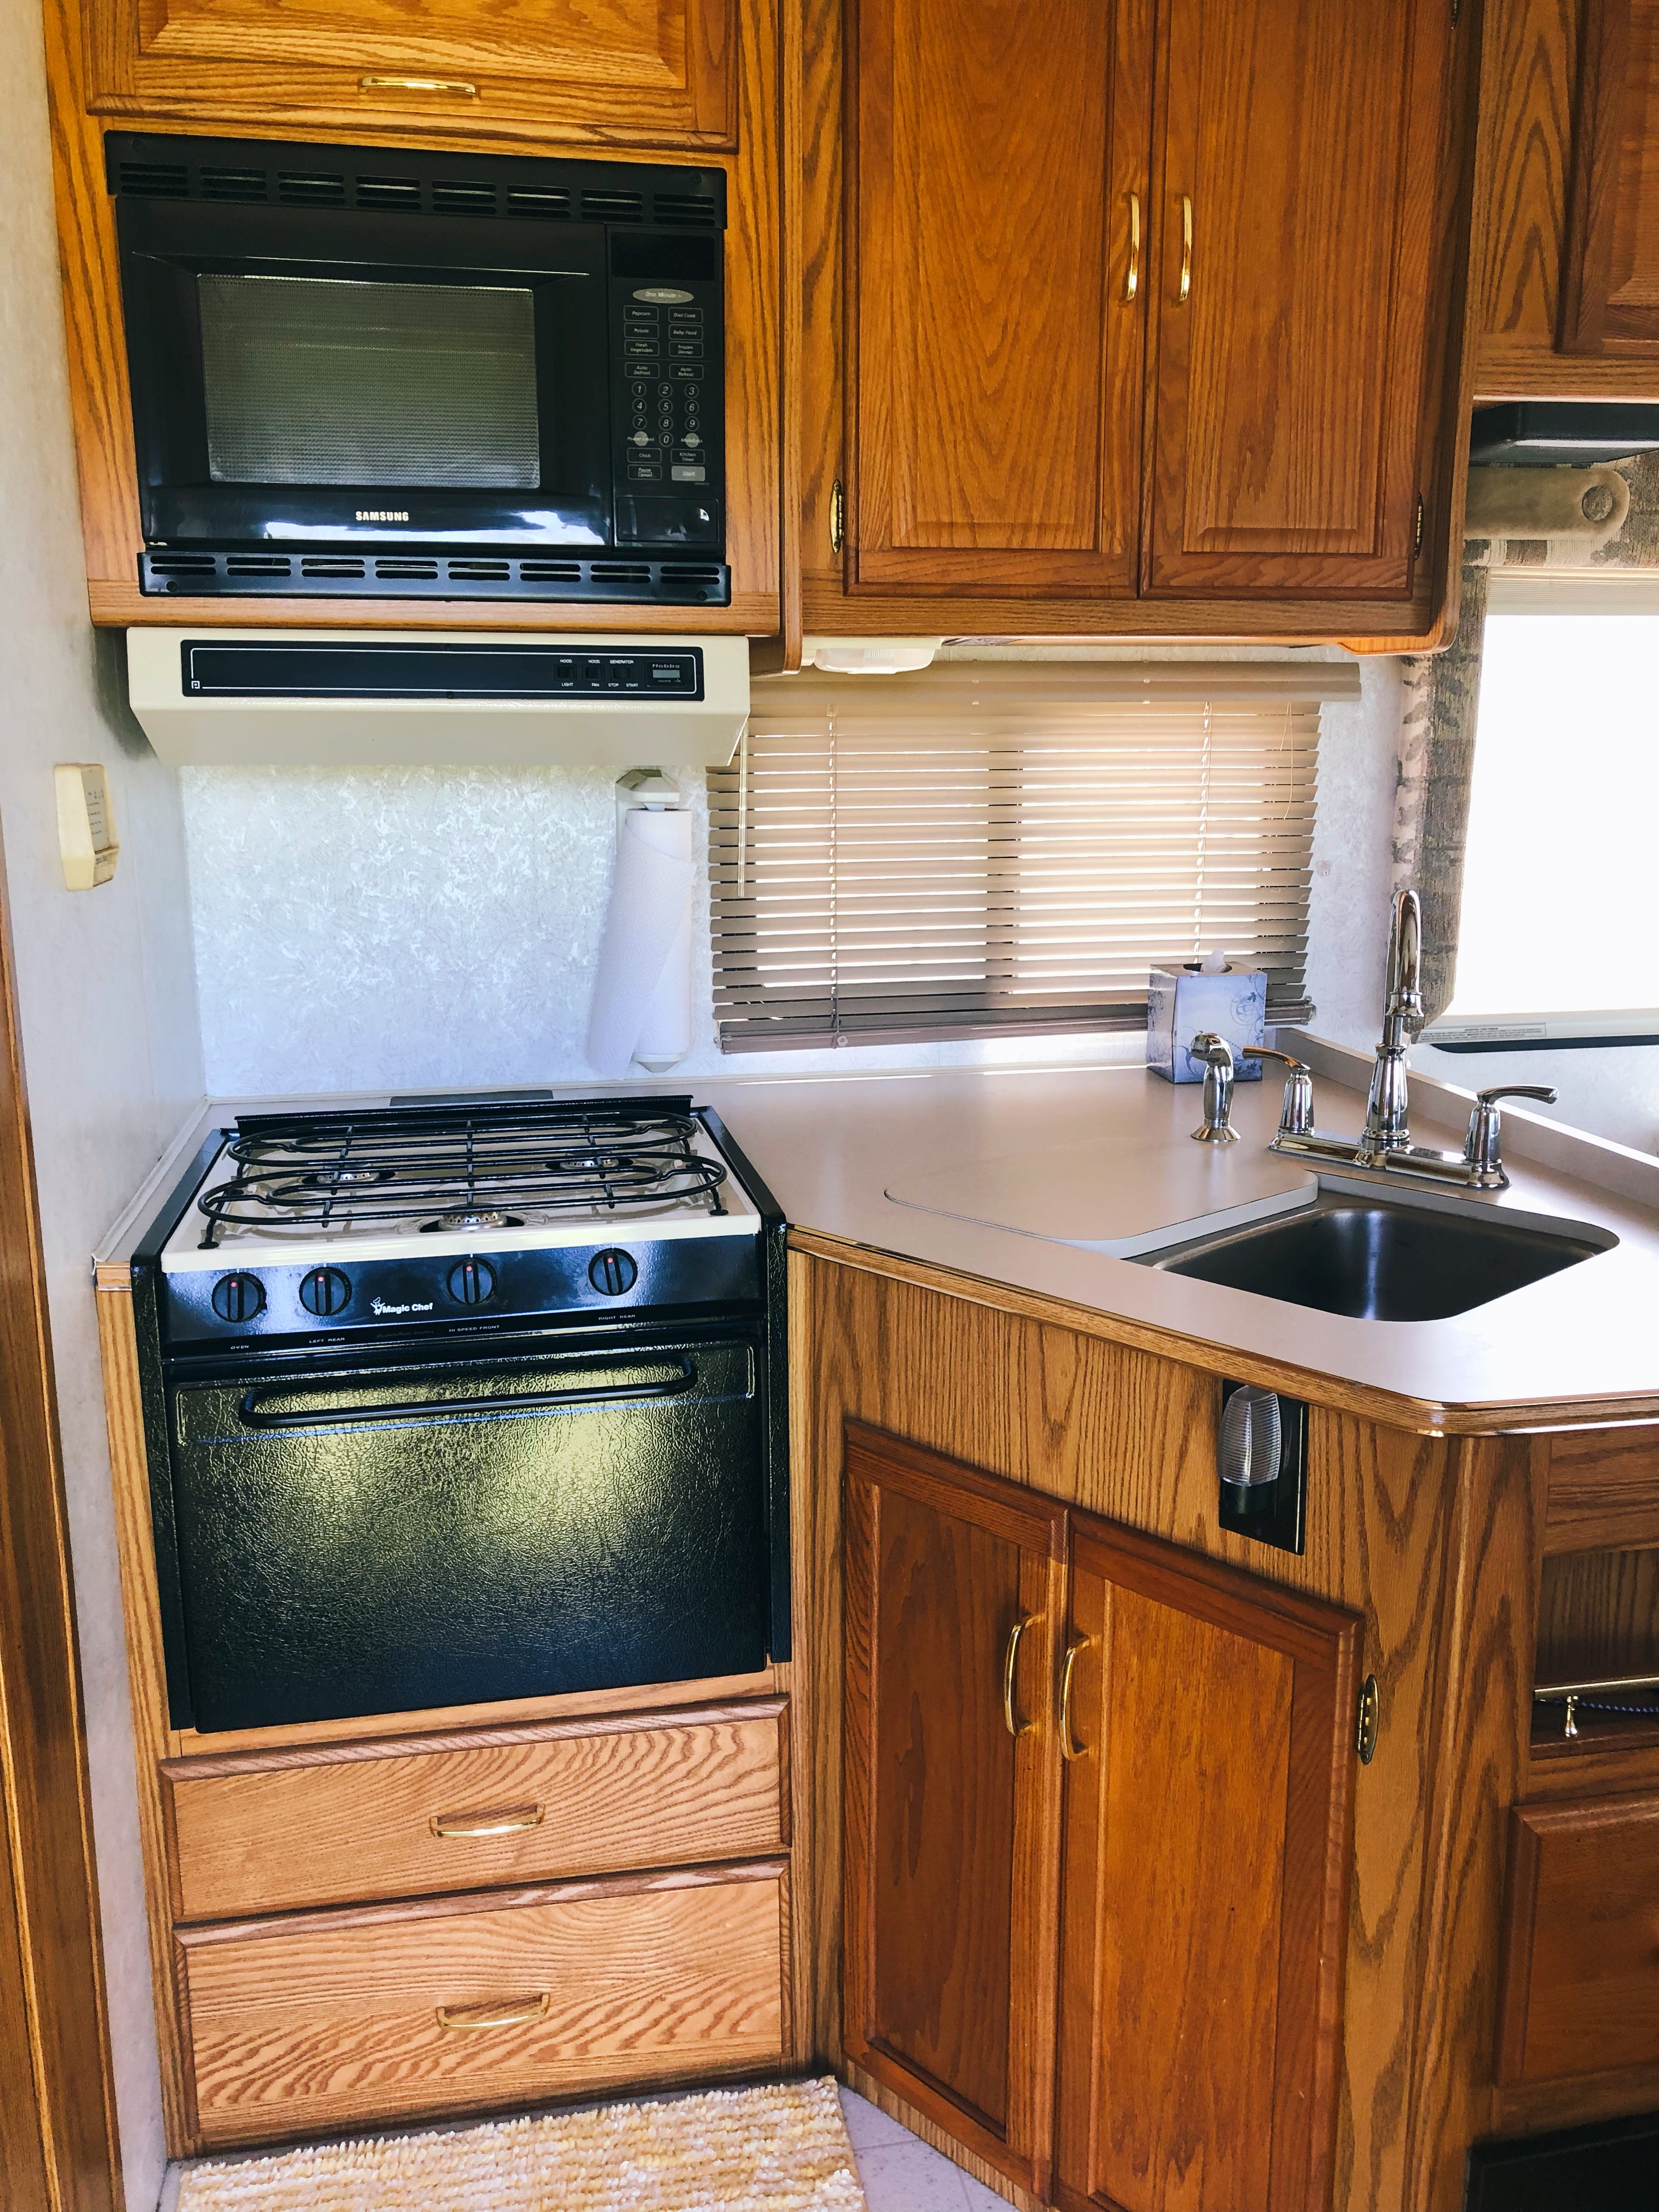 With this three burner stove and oven you can make a large meal even if you're not grilling outside. Microwave is above the stove. . Itasca Spirit 2000